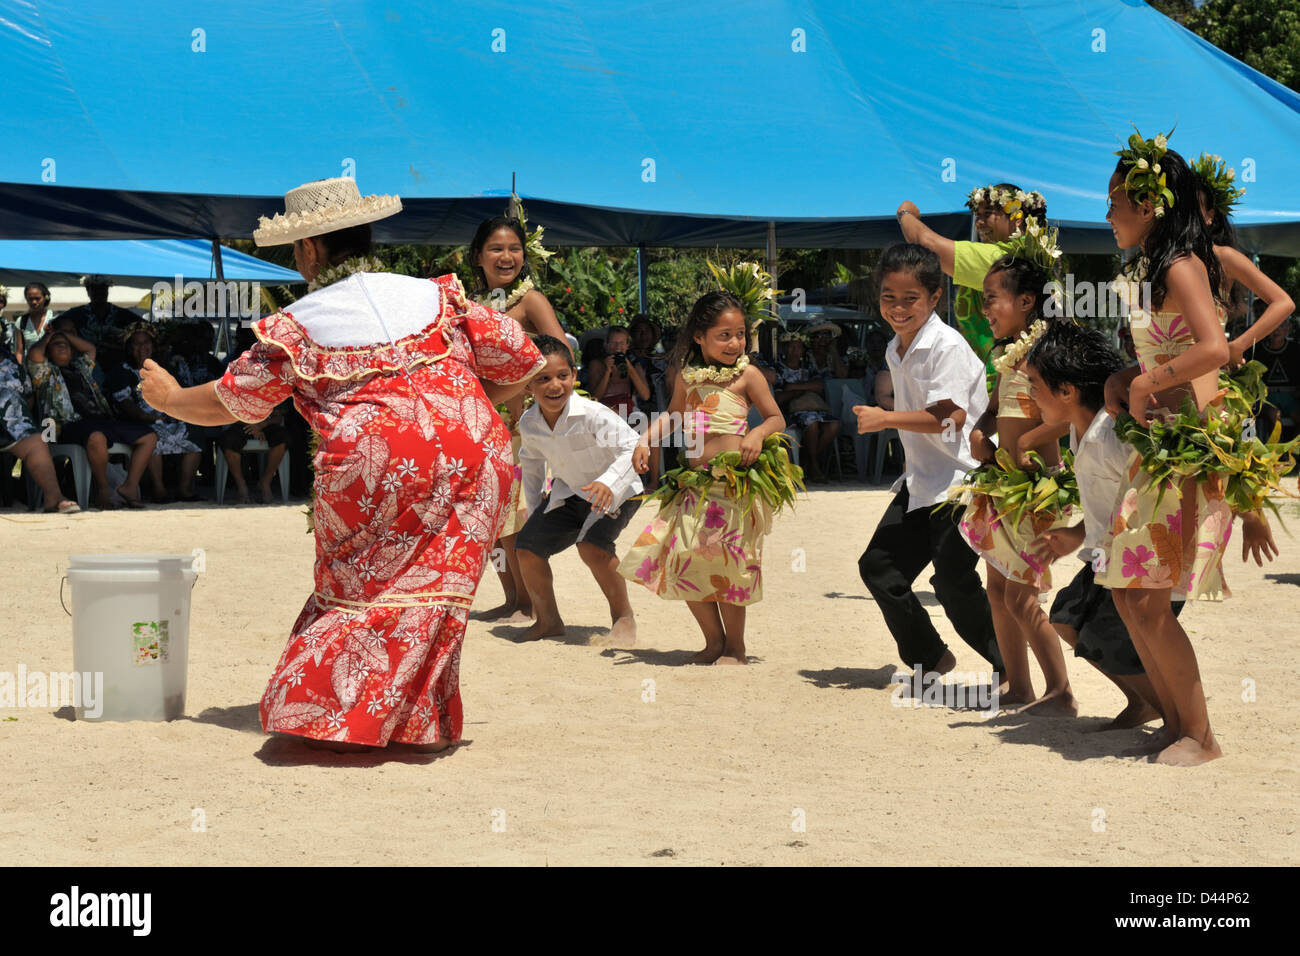 Youngsters dancing during the very public giving of money during Gospel Day event staged by the Cook Islands Christian - Stock Image